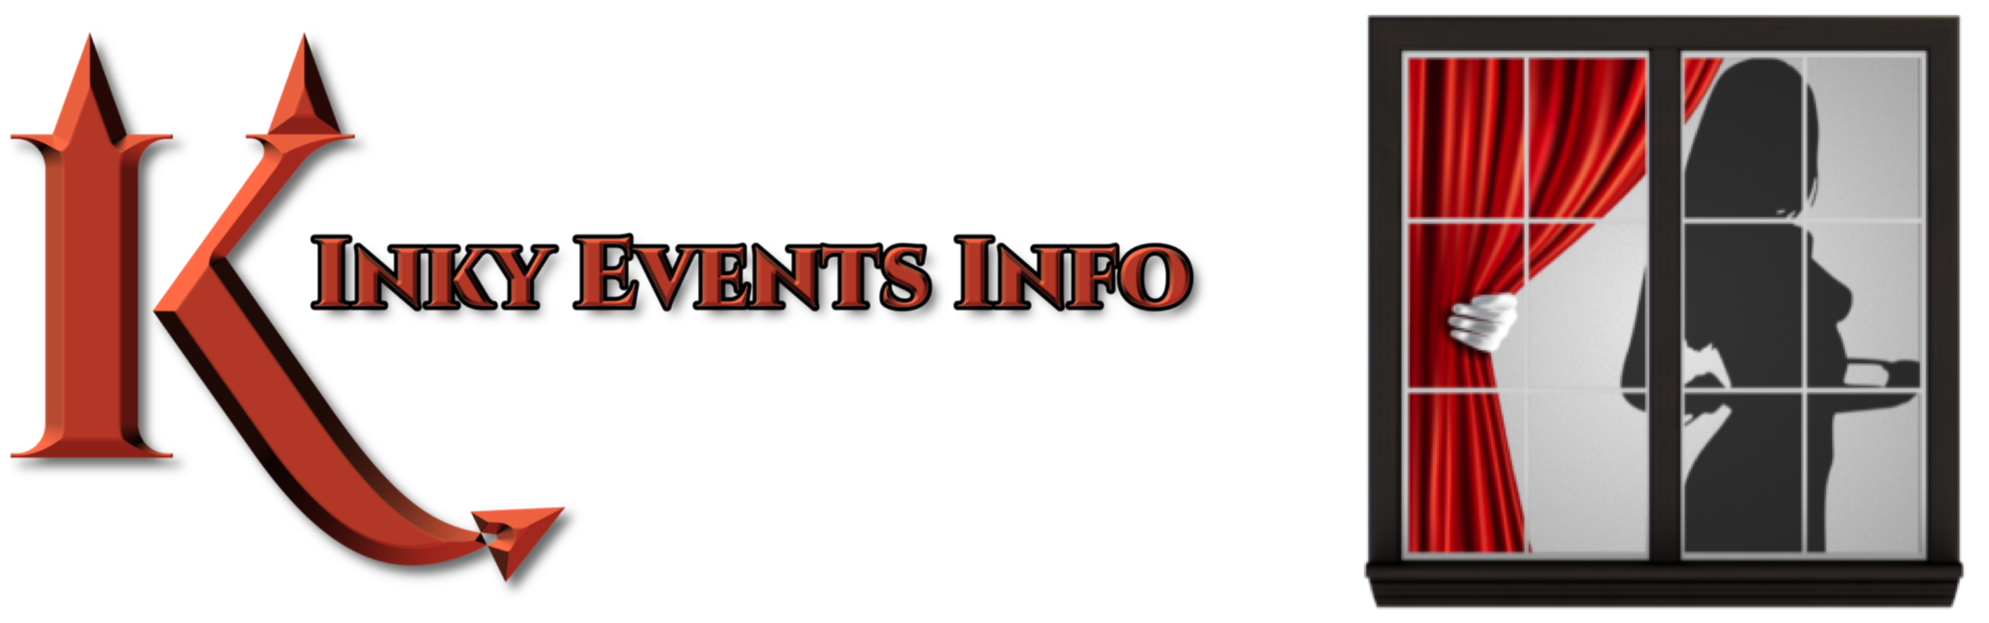 Kinky Events Info